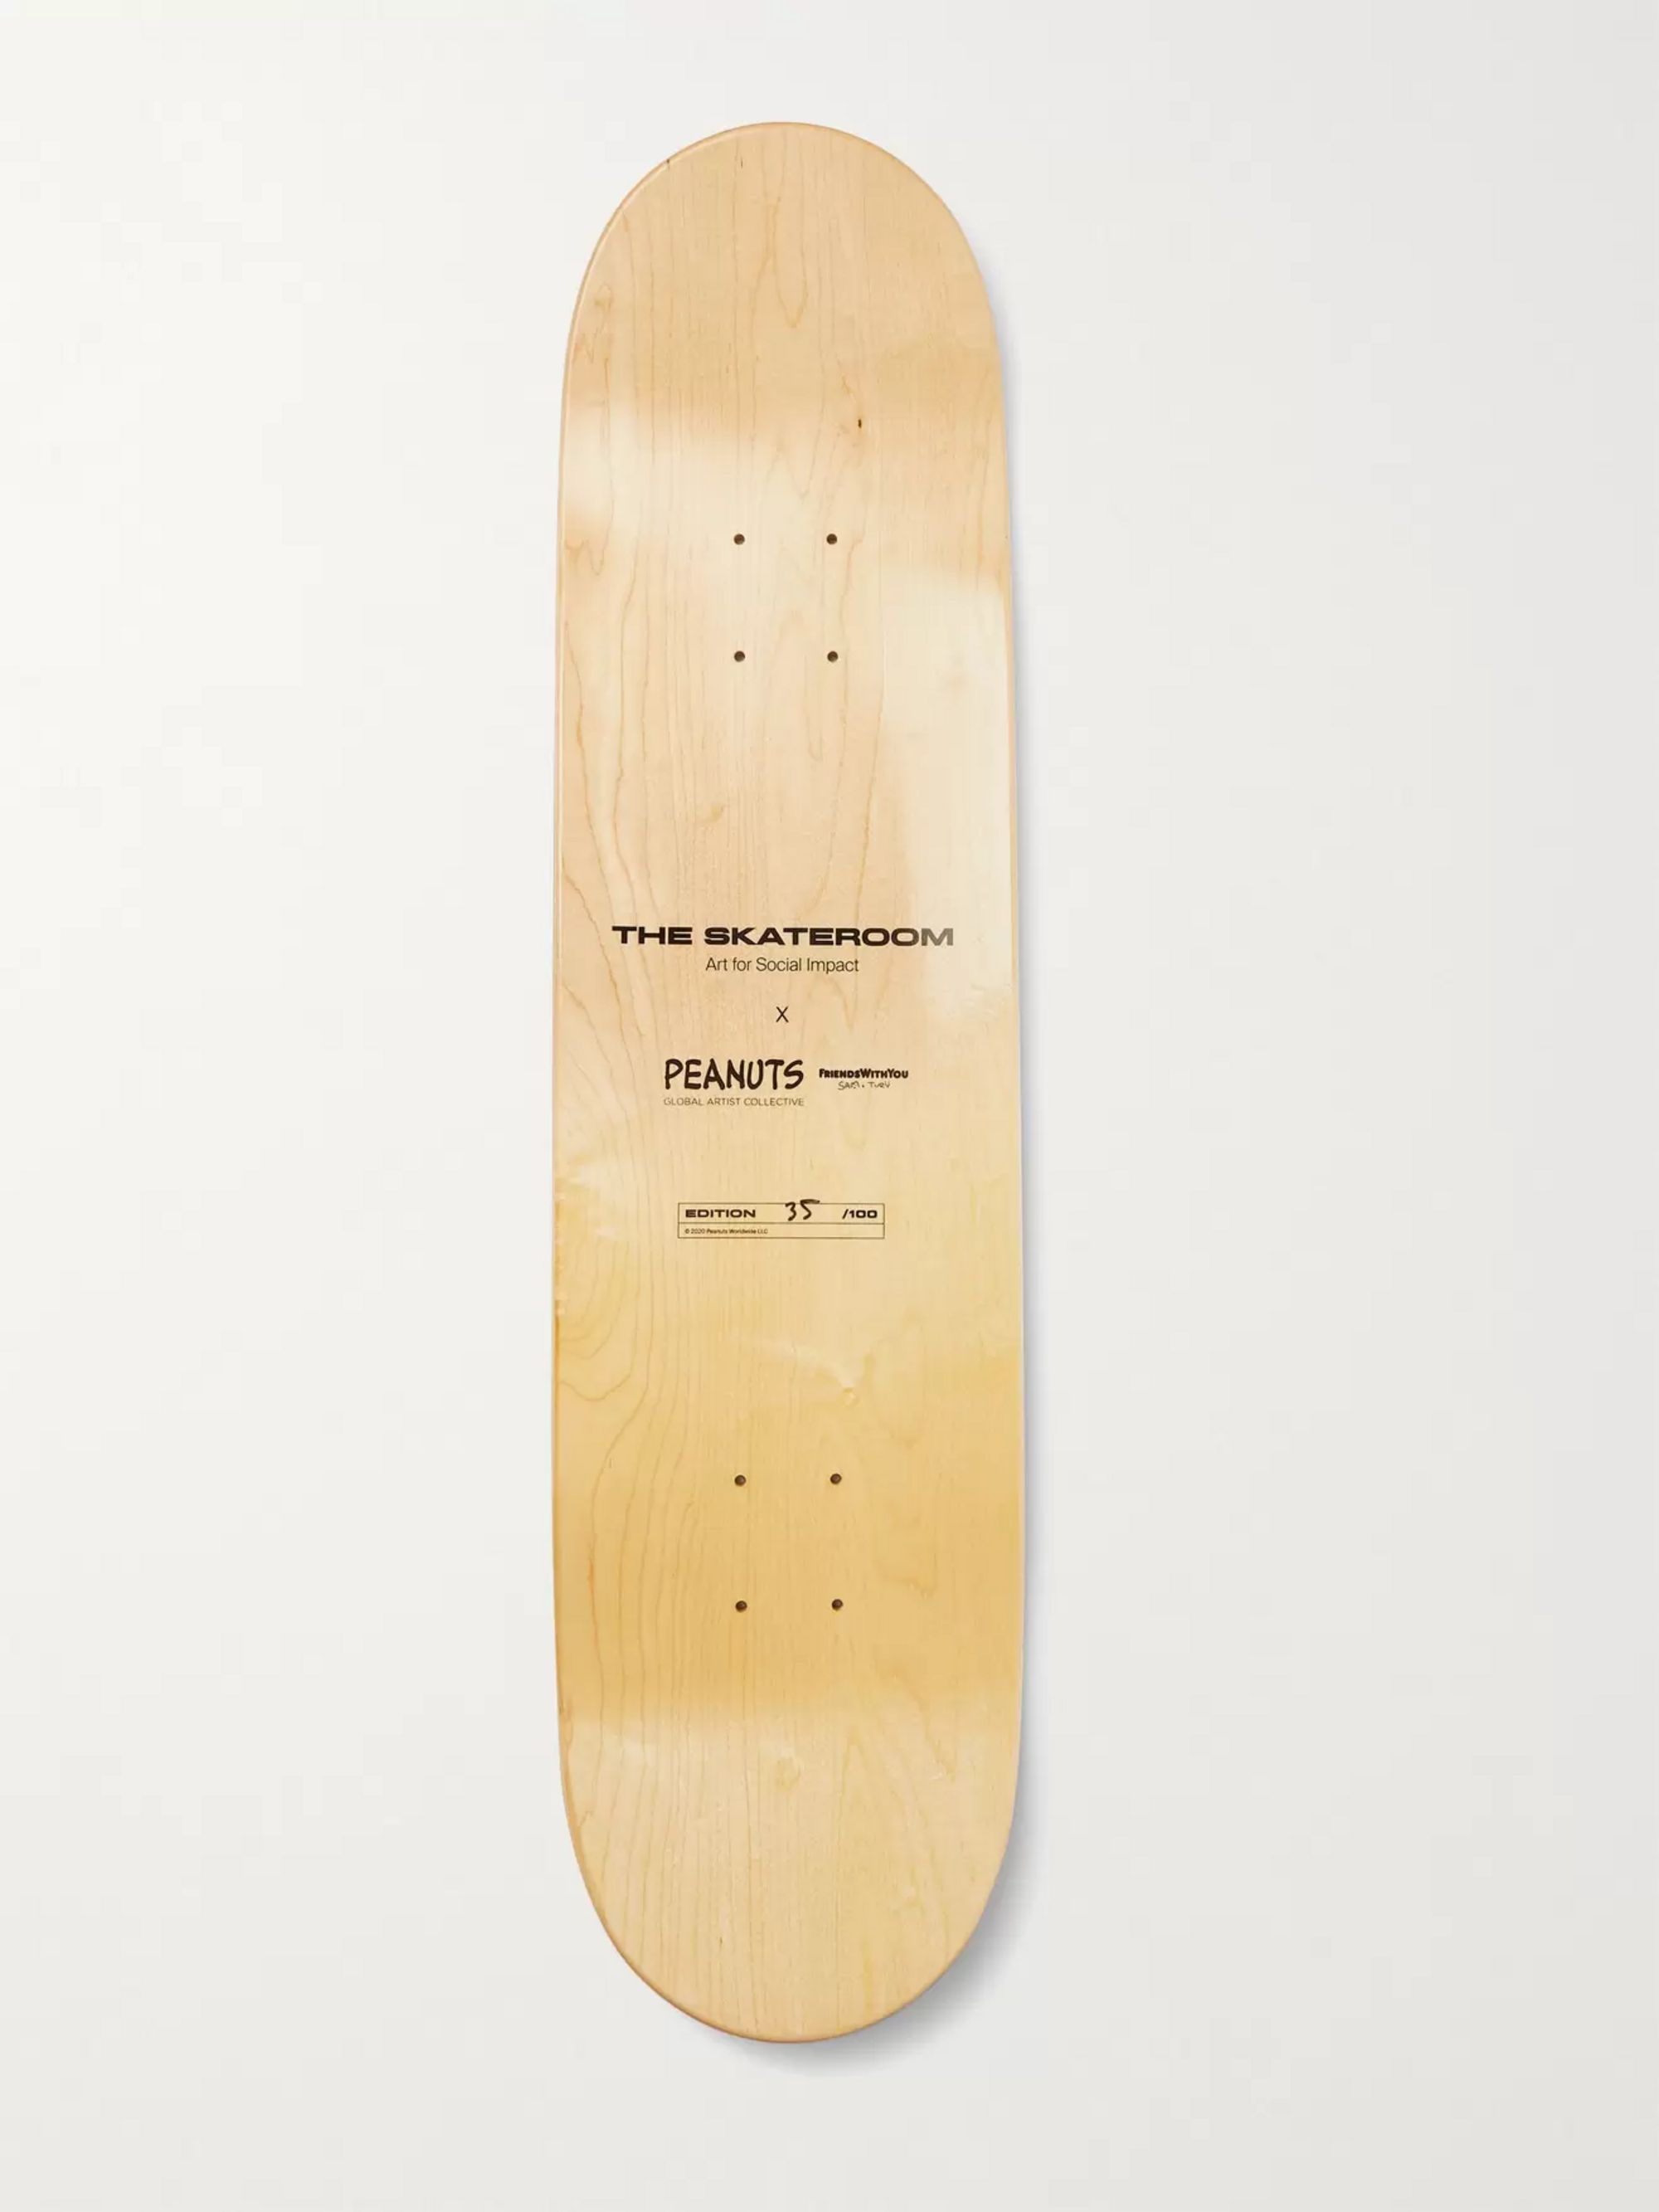 THE SKATEROOM + Peanuts by FriendsWithYou Printed Wooden Skateboard